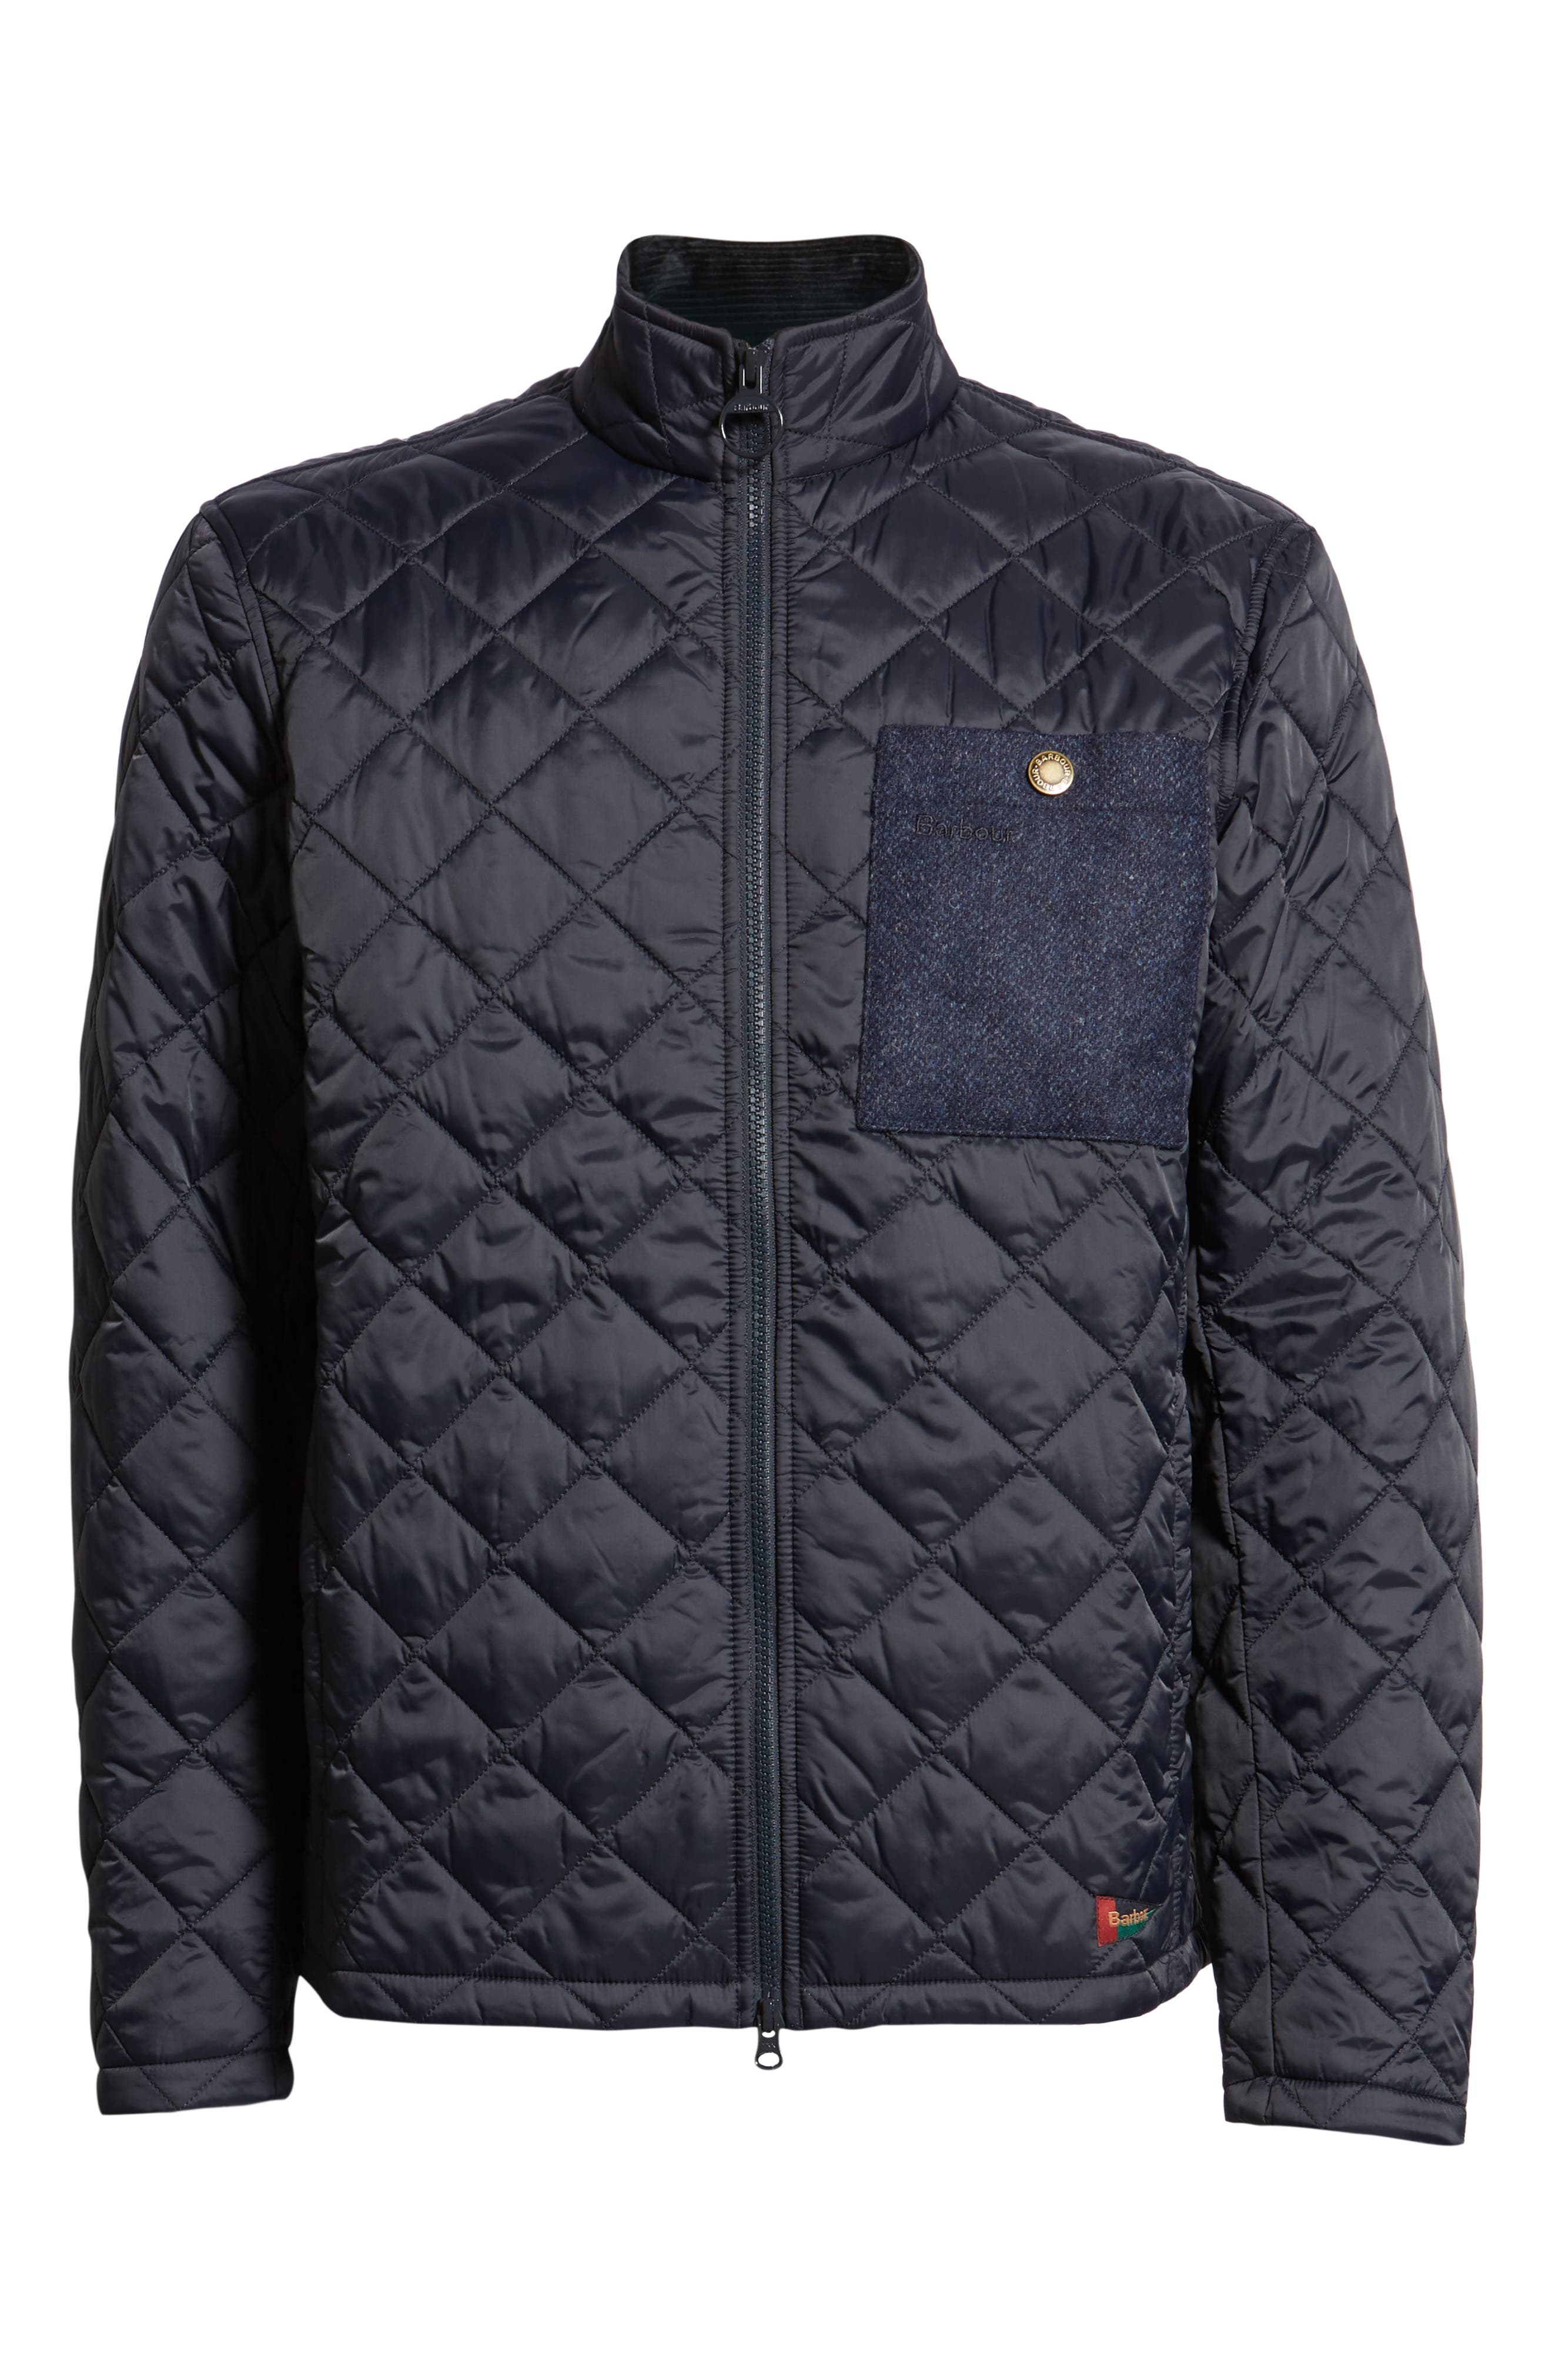 BARBOUR, Barbout Abaft Quilted Jacket, Alternate thumbnail 6, color, NAVY